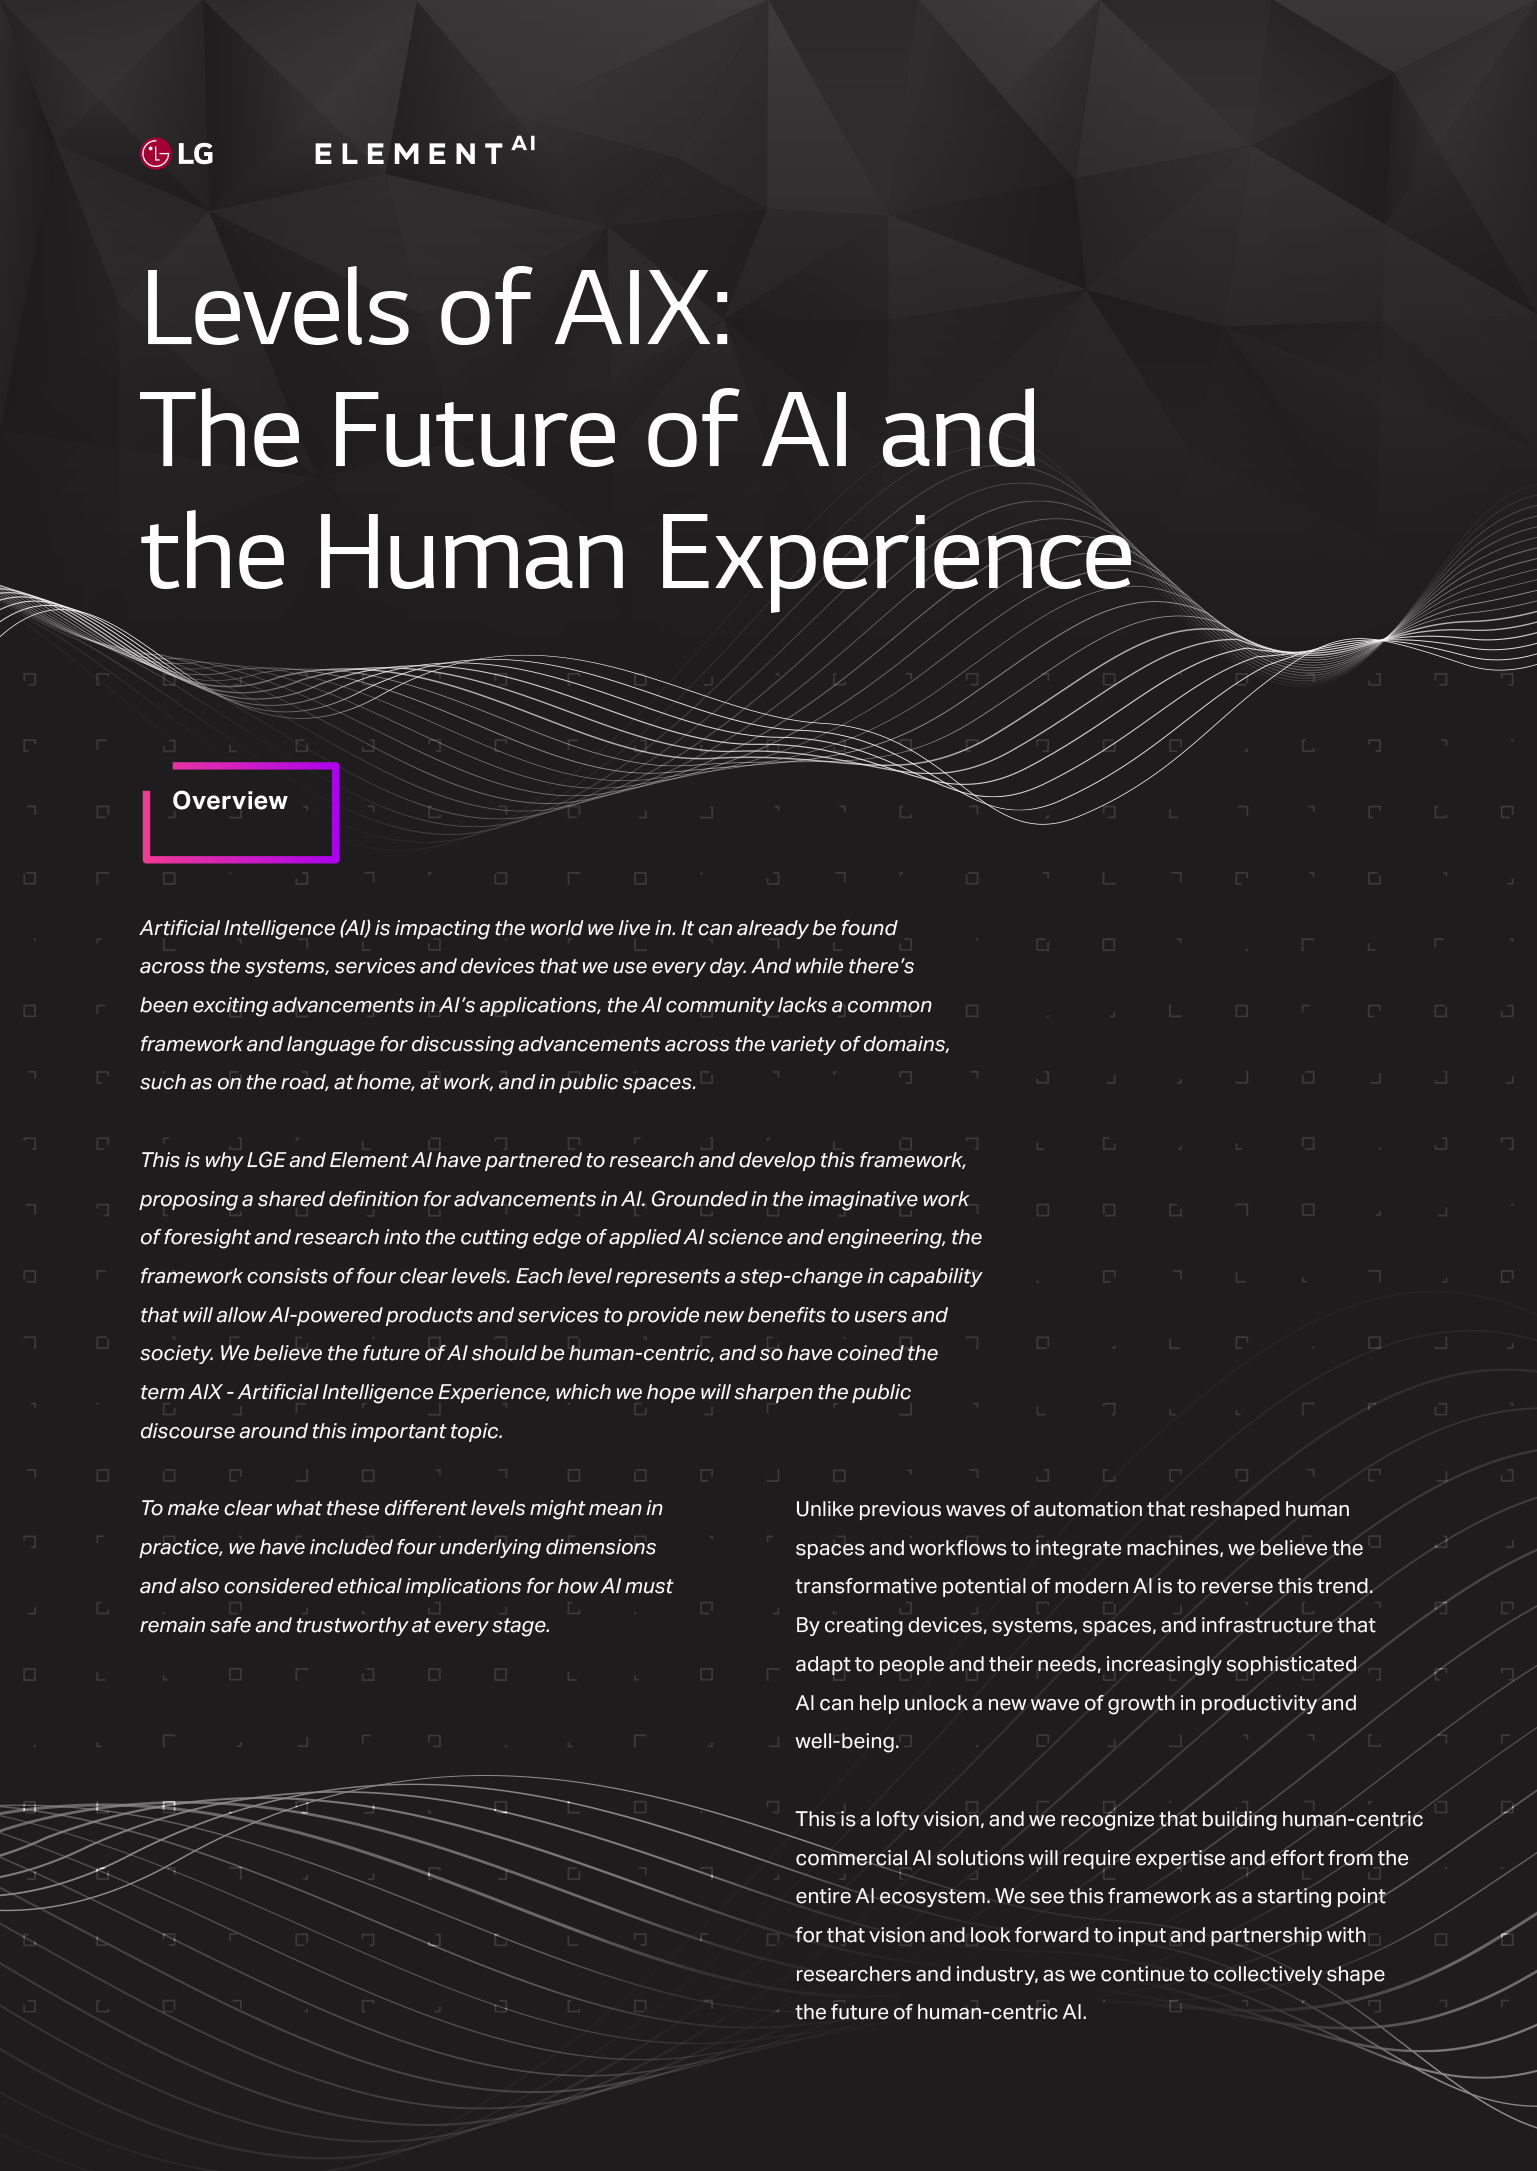 Levels of AIX: The Future of AI and the Human Experience